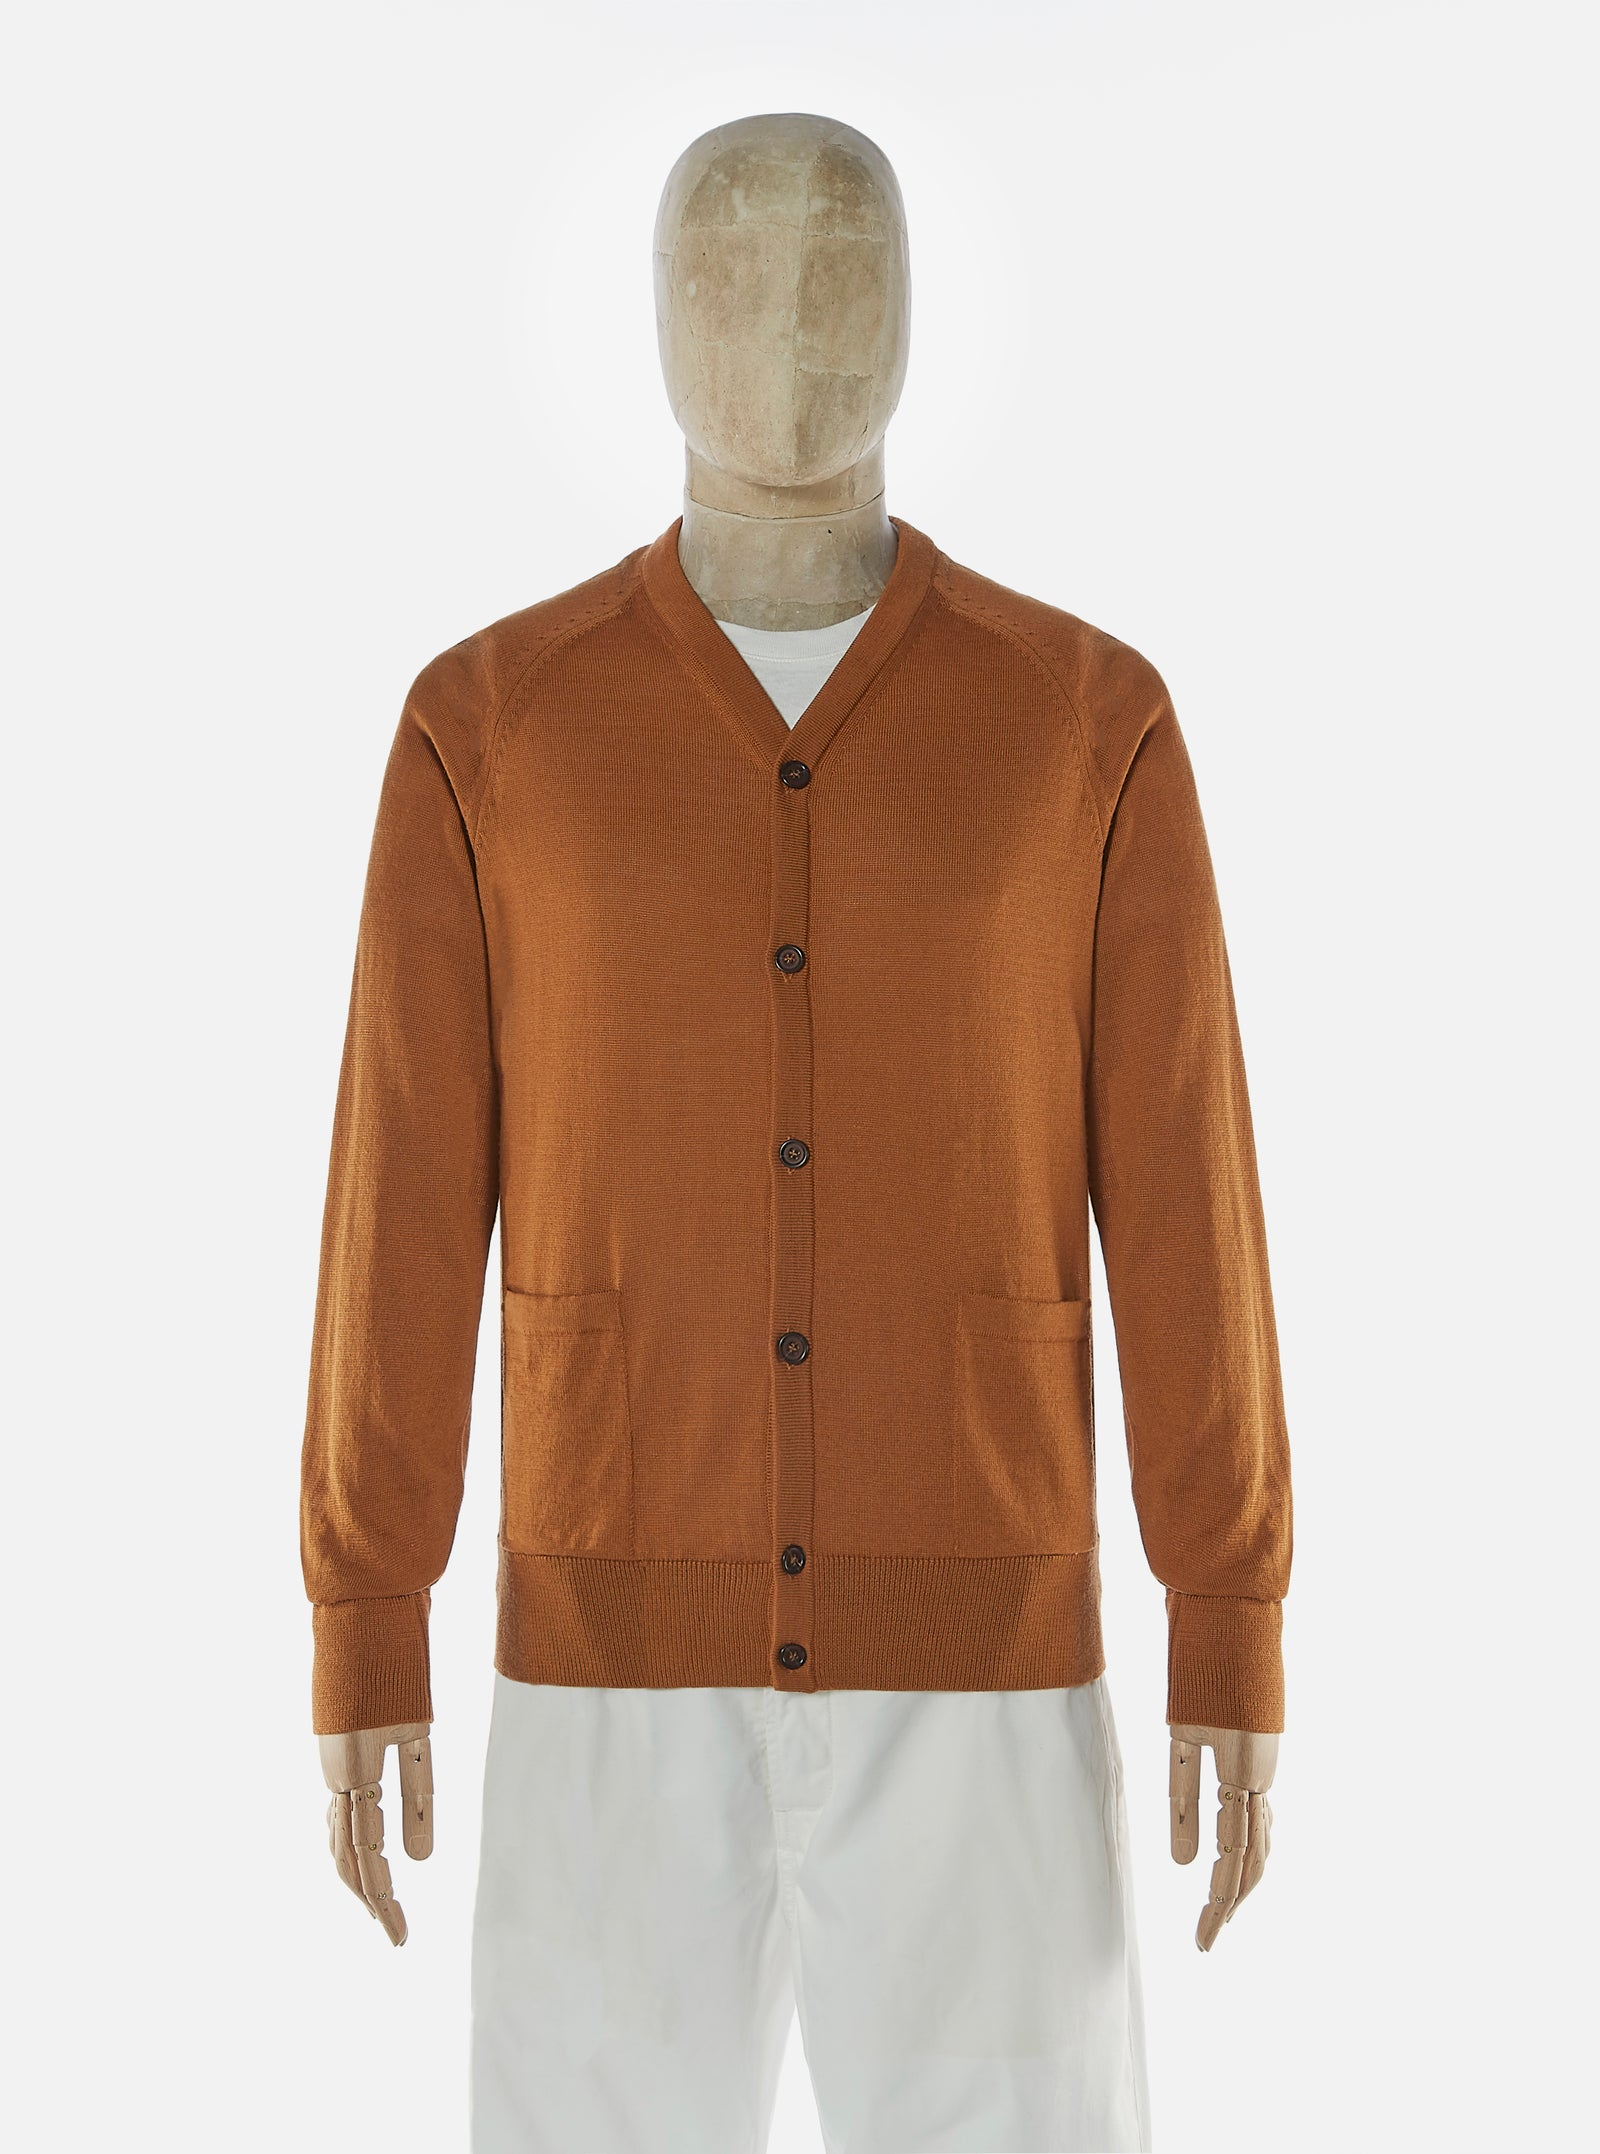 Universal Works Loose Cardigan in Caramel Merino Knit